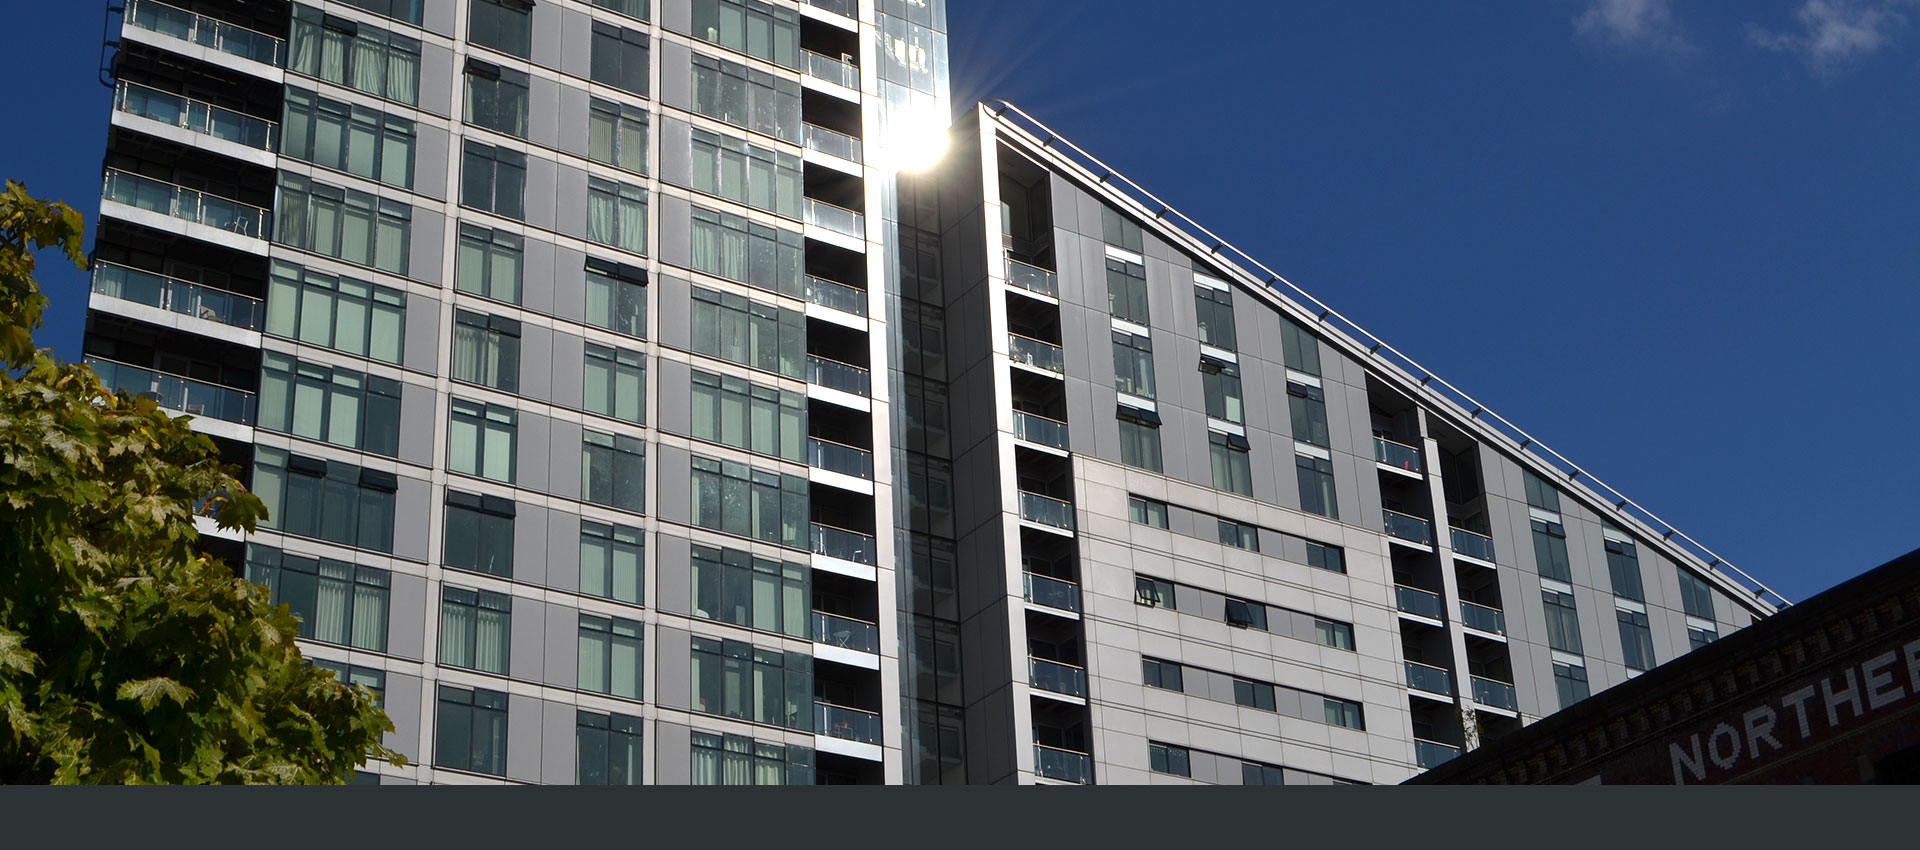 Great Northern Tower by Energicity - Experts in LED lighting and controls